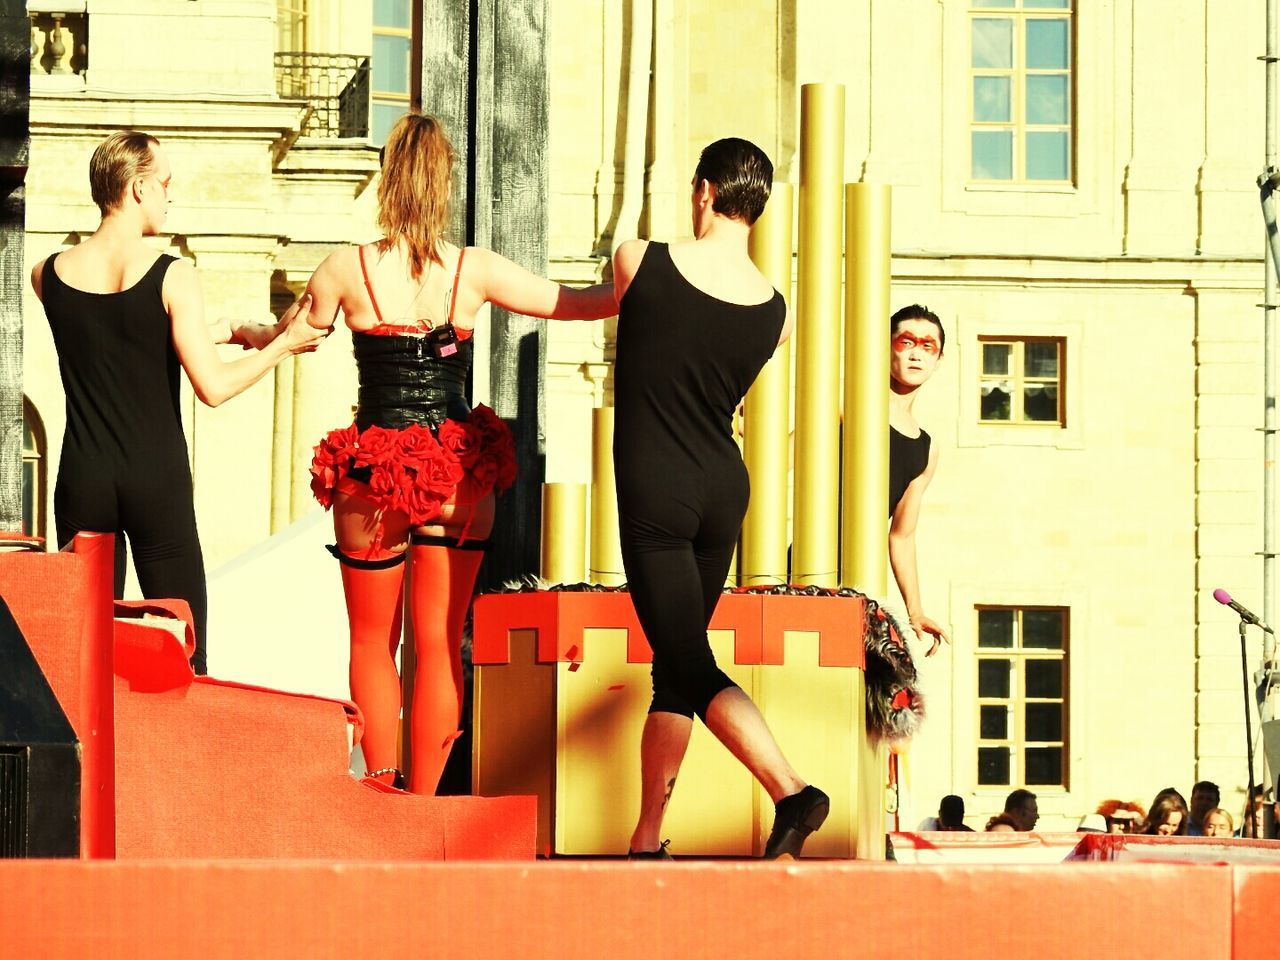 Magic Moments Rose🌹 Relaxing VENERA Wagner Fine Art Photography Gatchinskii Palace Wow!!😋 All Together Opera Wagner Opera Tannhauser Gatchina Russia Summertime